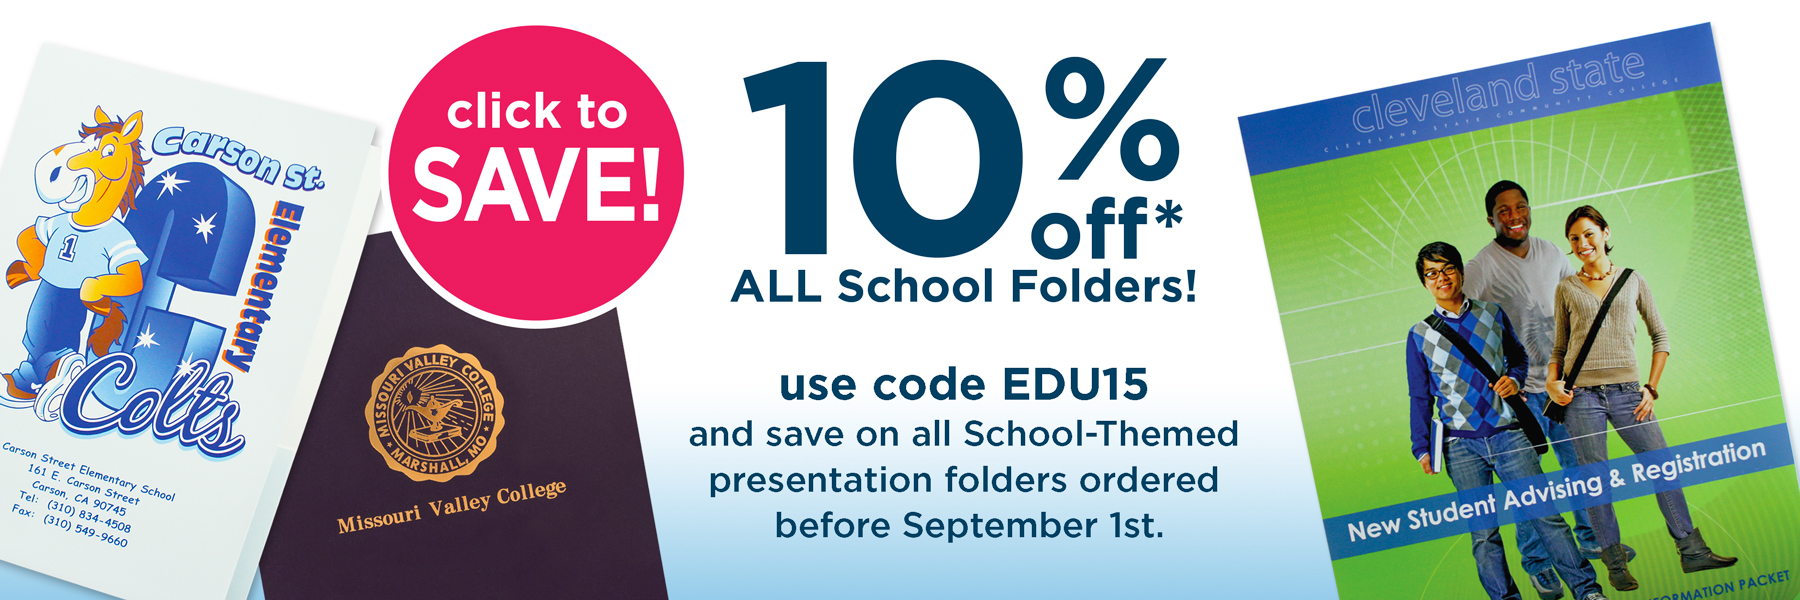 Save on Education Folder from Admore